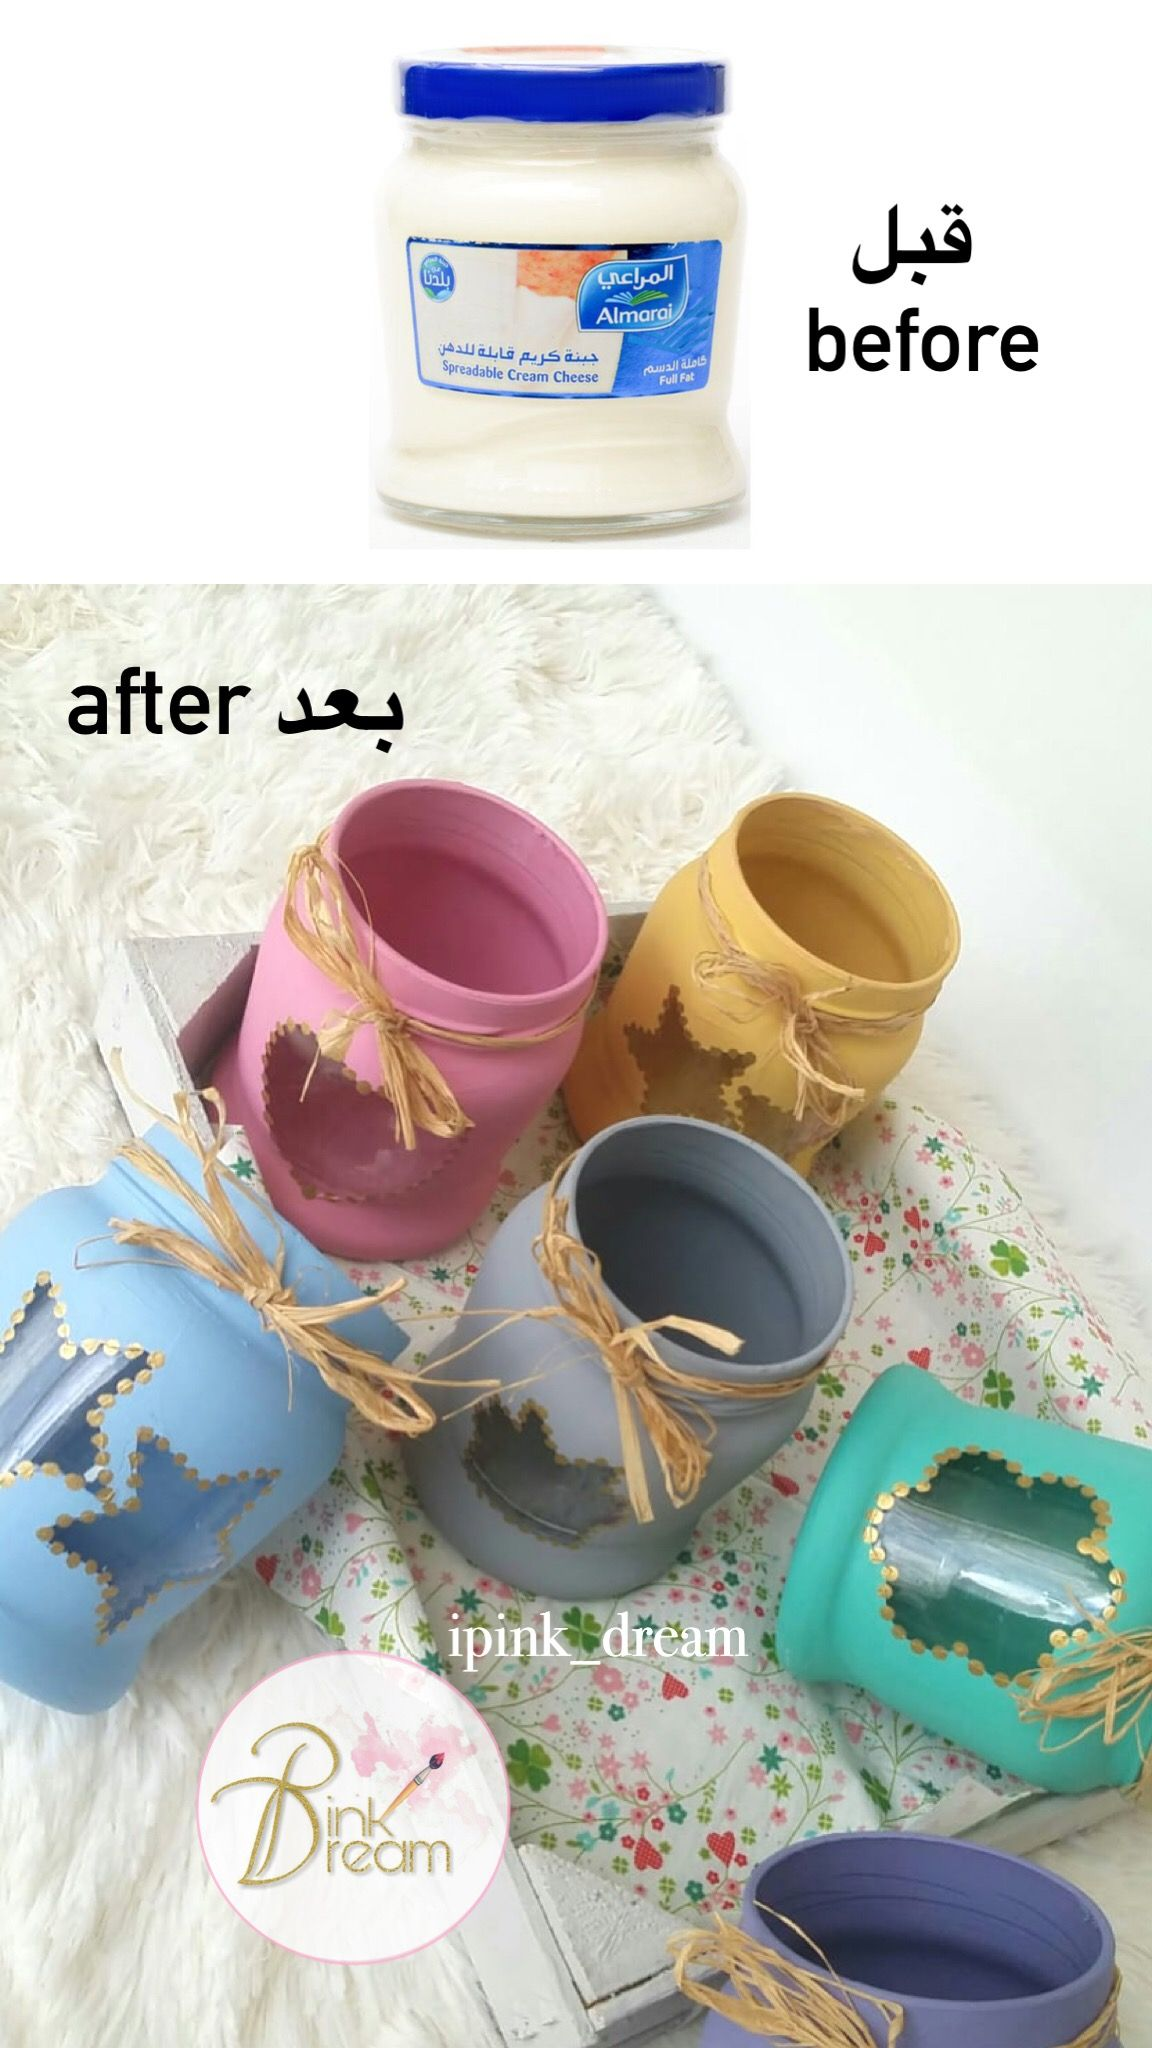 إعادة تدوير قبل وبعد Recycle Recycling Before After Glass Jar Art Altered Jar Handmade Crafts Home Goods Decor Crafts